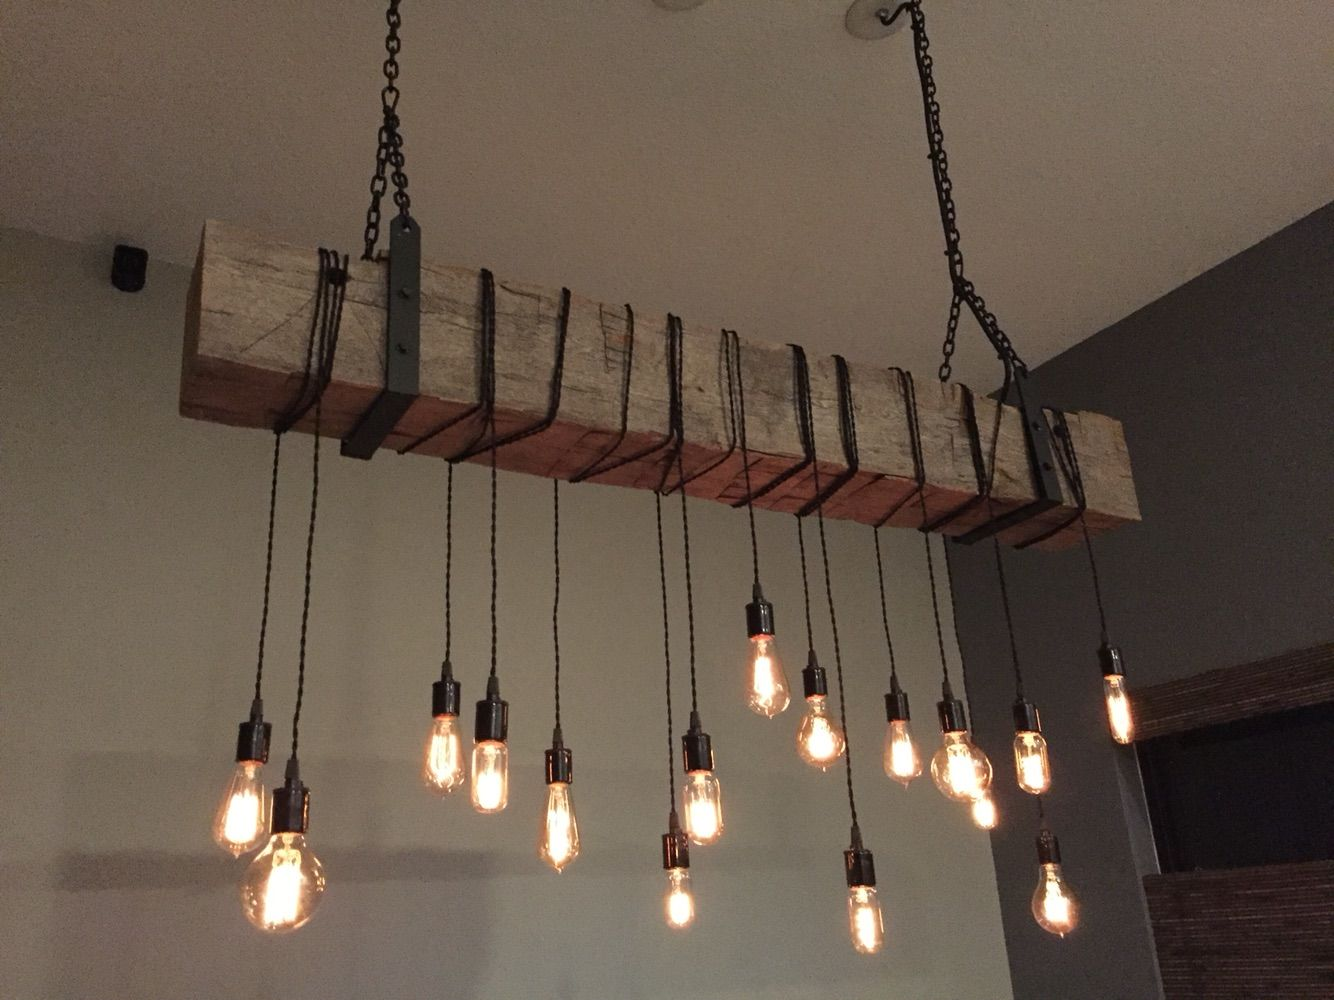 buy a custom reclaimed barn beam chandelier light fixture modern  - custom made reclaimed barn beam chandelier light fixture modernindustrial rustic restaurant bar